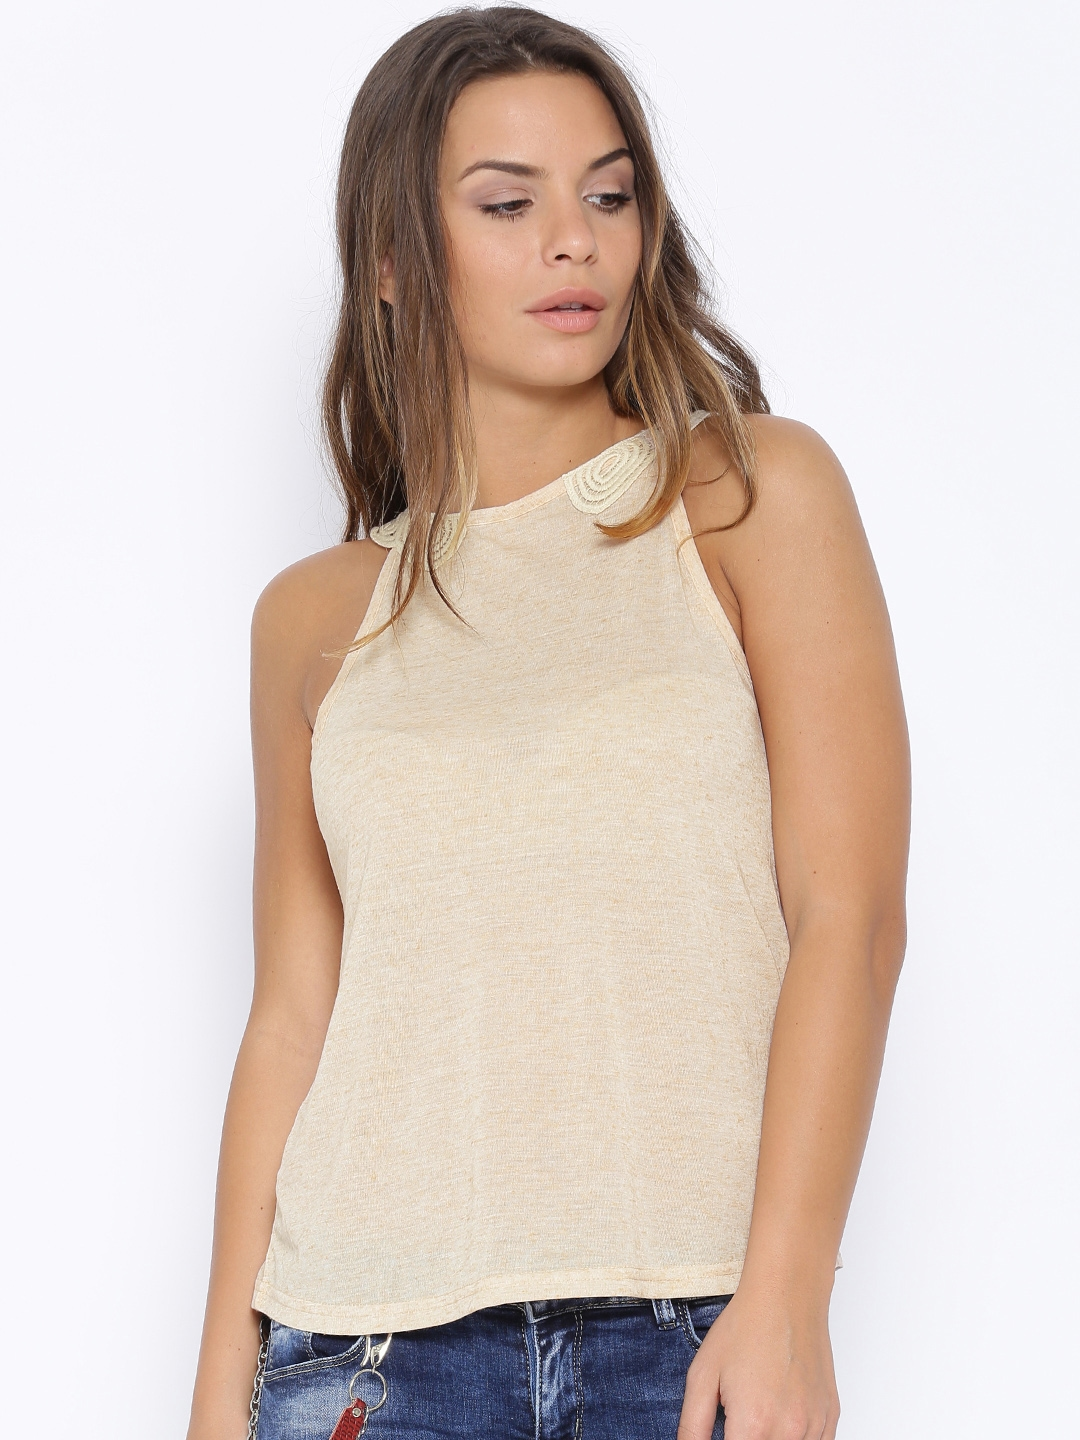 173daf49ecb Buy Deal Jeans Beige Sleeveless Top - Tops for Women 1207370